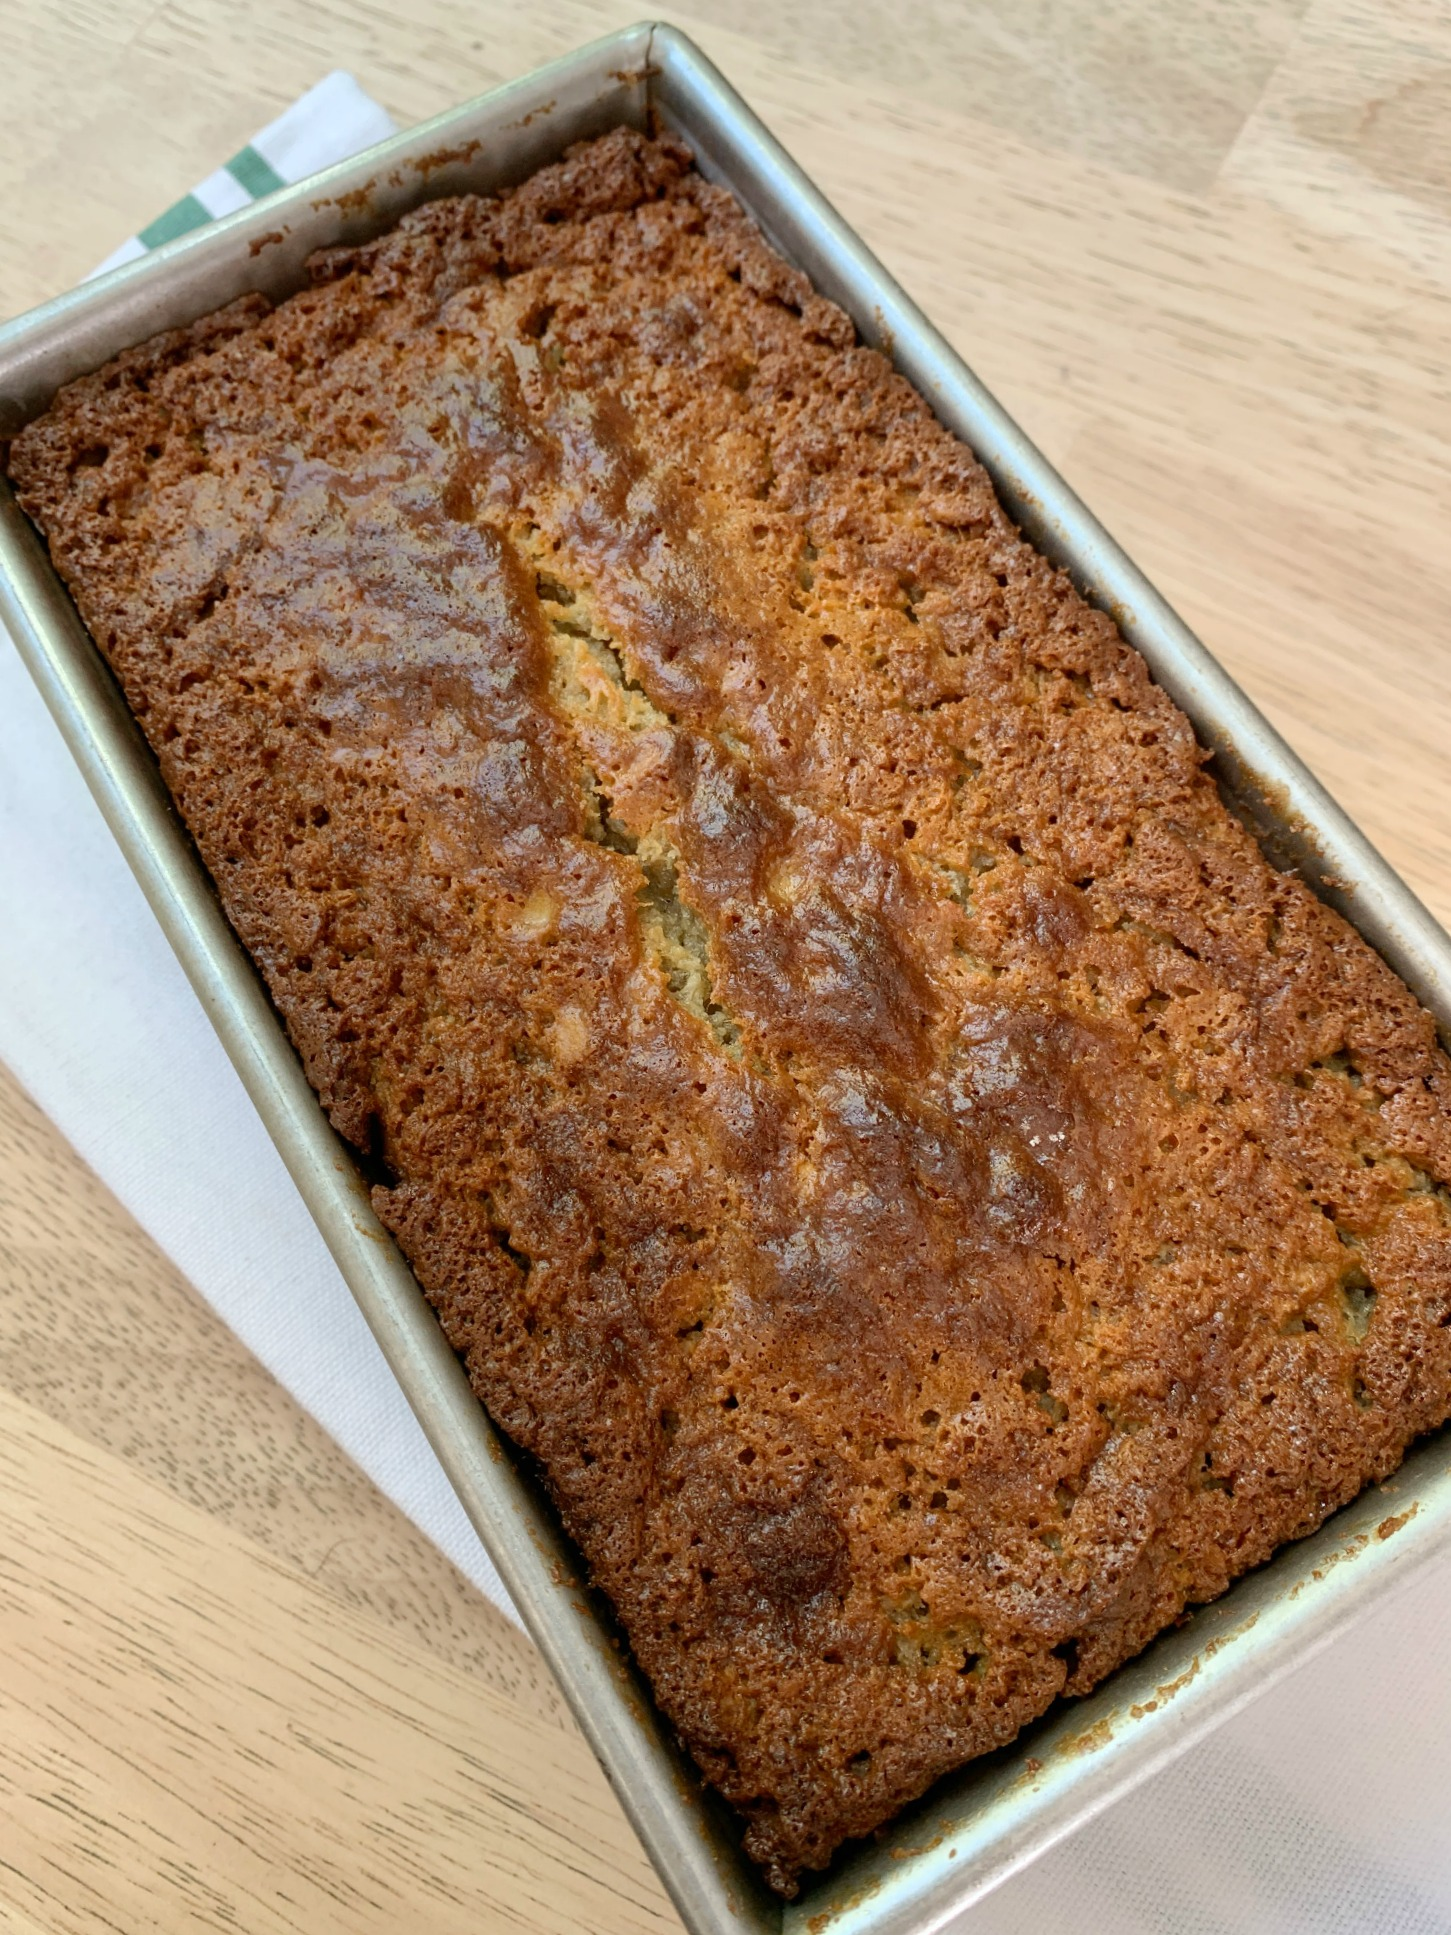 a loaf of banana oatmeal bread in the pan